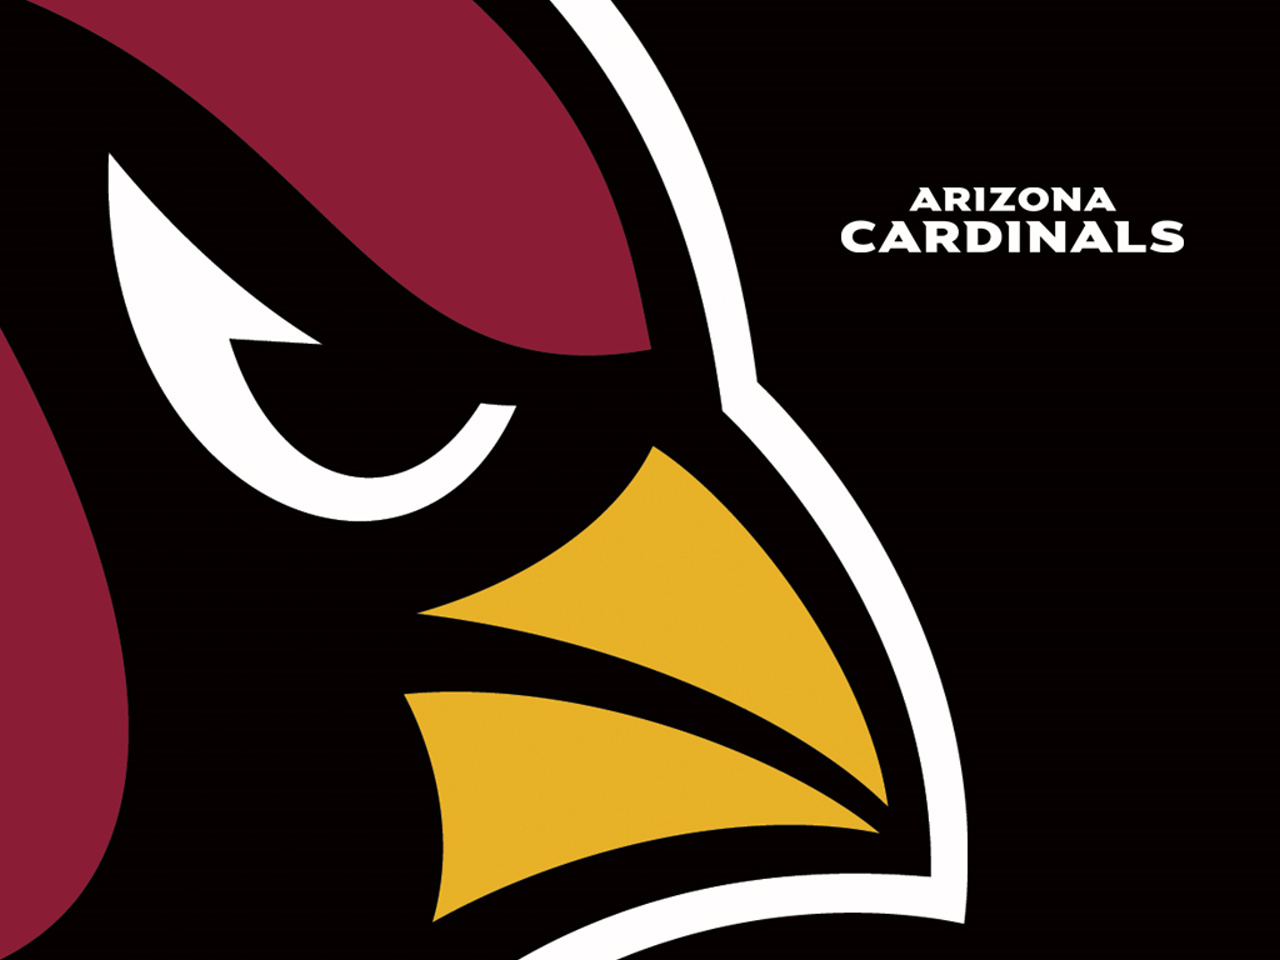 Arizona Cardinals | Trending pictures | Pinterest | Arizona